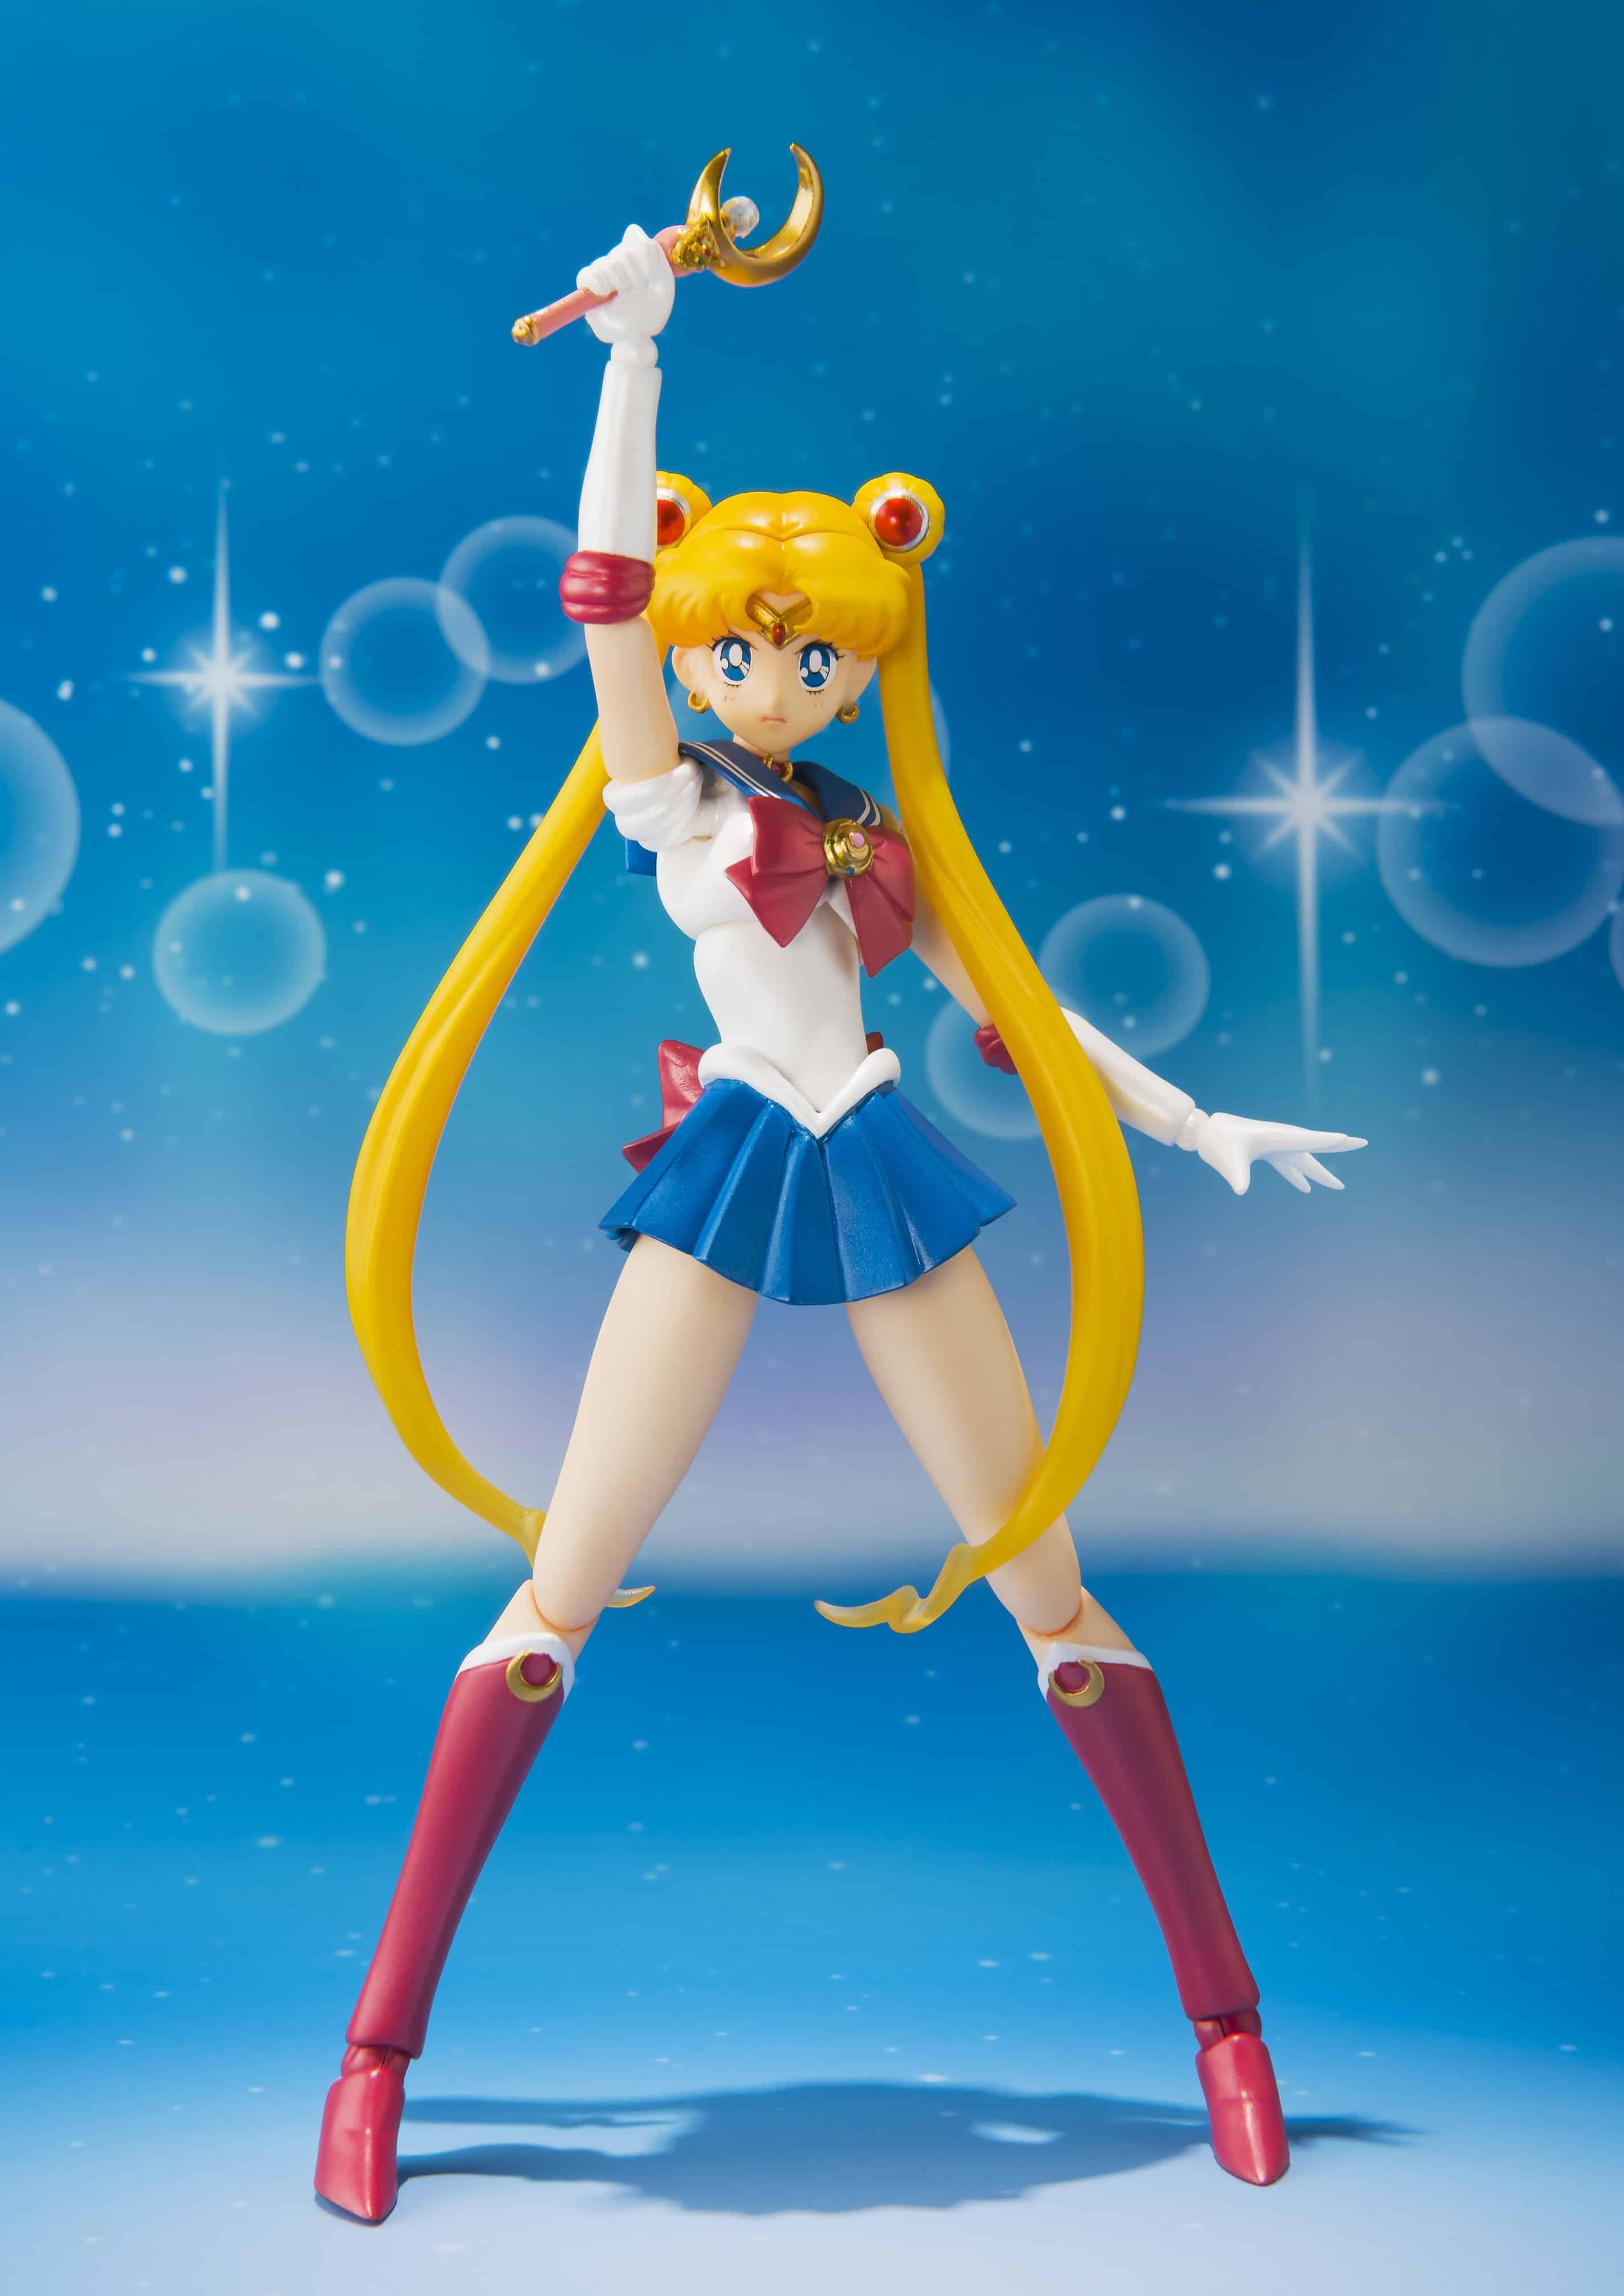 BUNNY SAILOR MOON FIGURA 14 CM SAILOR MOON S.H. FIGUARTS